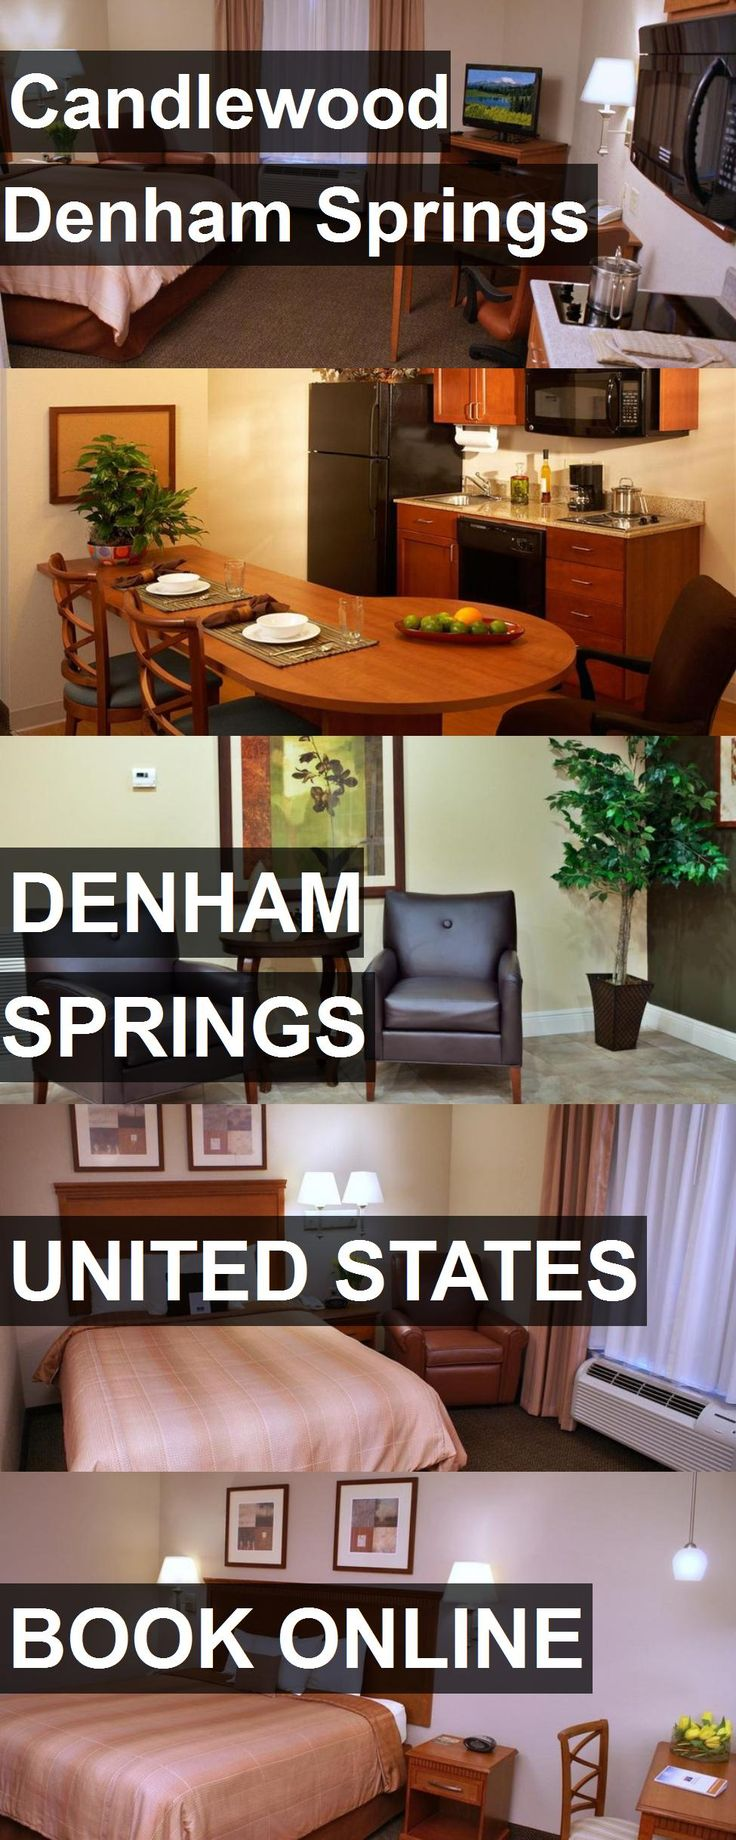 Hotel Candlewood Denham Springs in Denham Springs, United States. For more information, photos, reviews and best prices please follow the link. #UnitedStates #DenhamSprings #travel #vacation #hotel